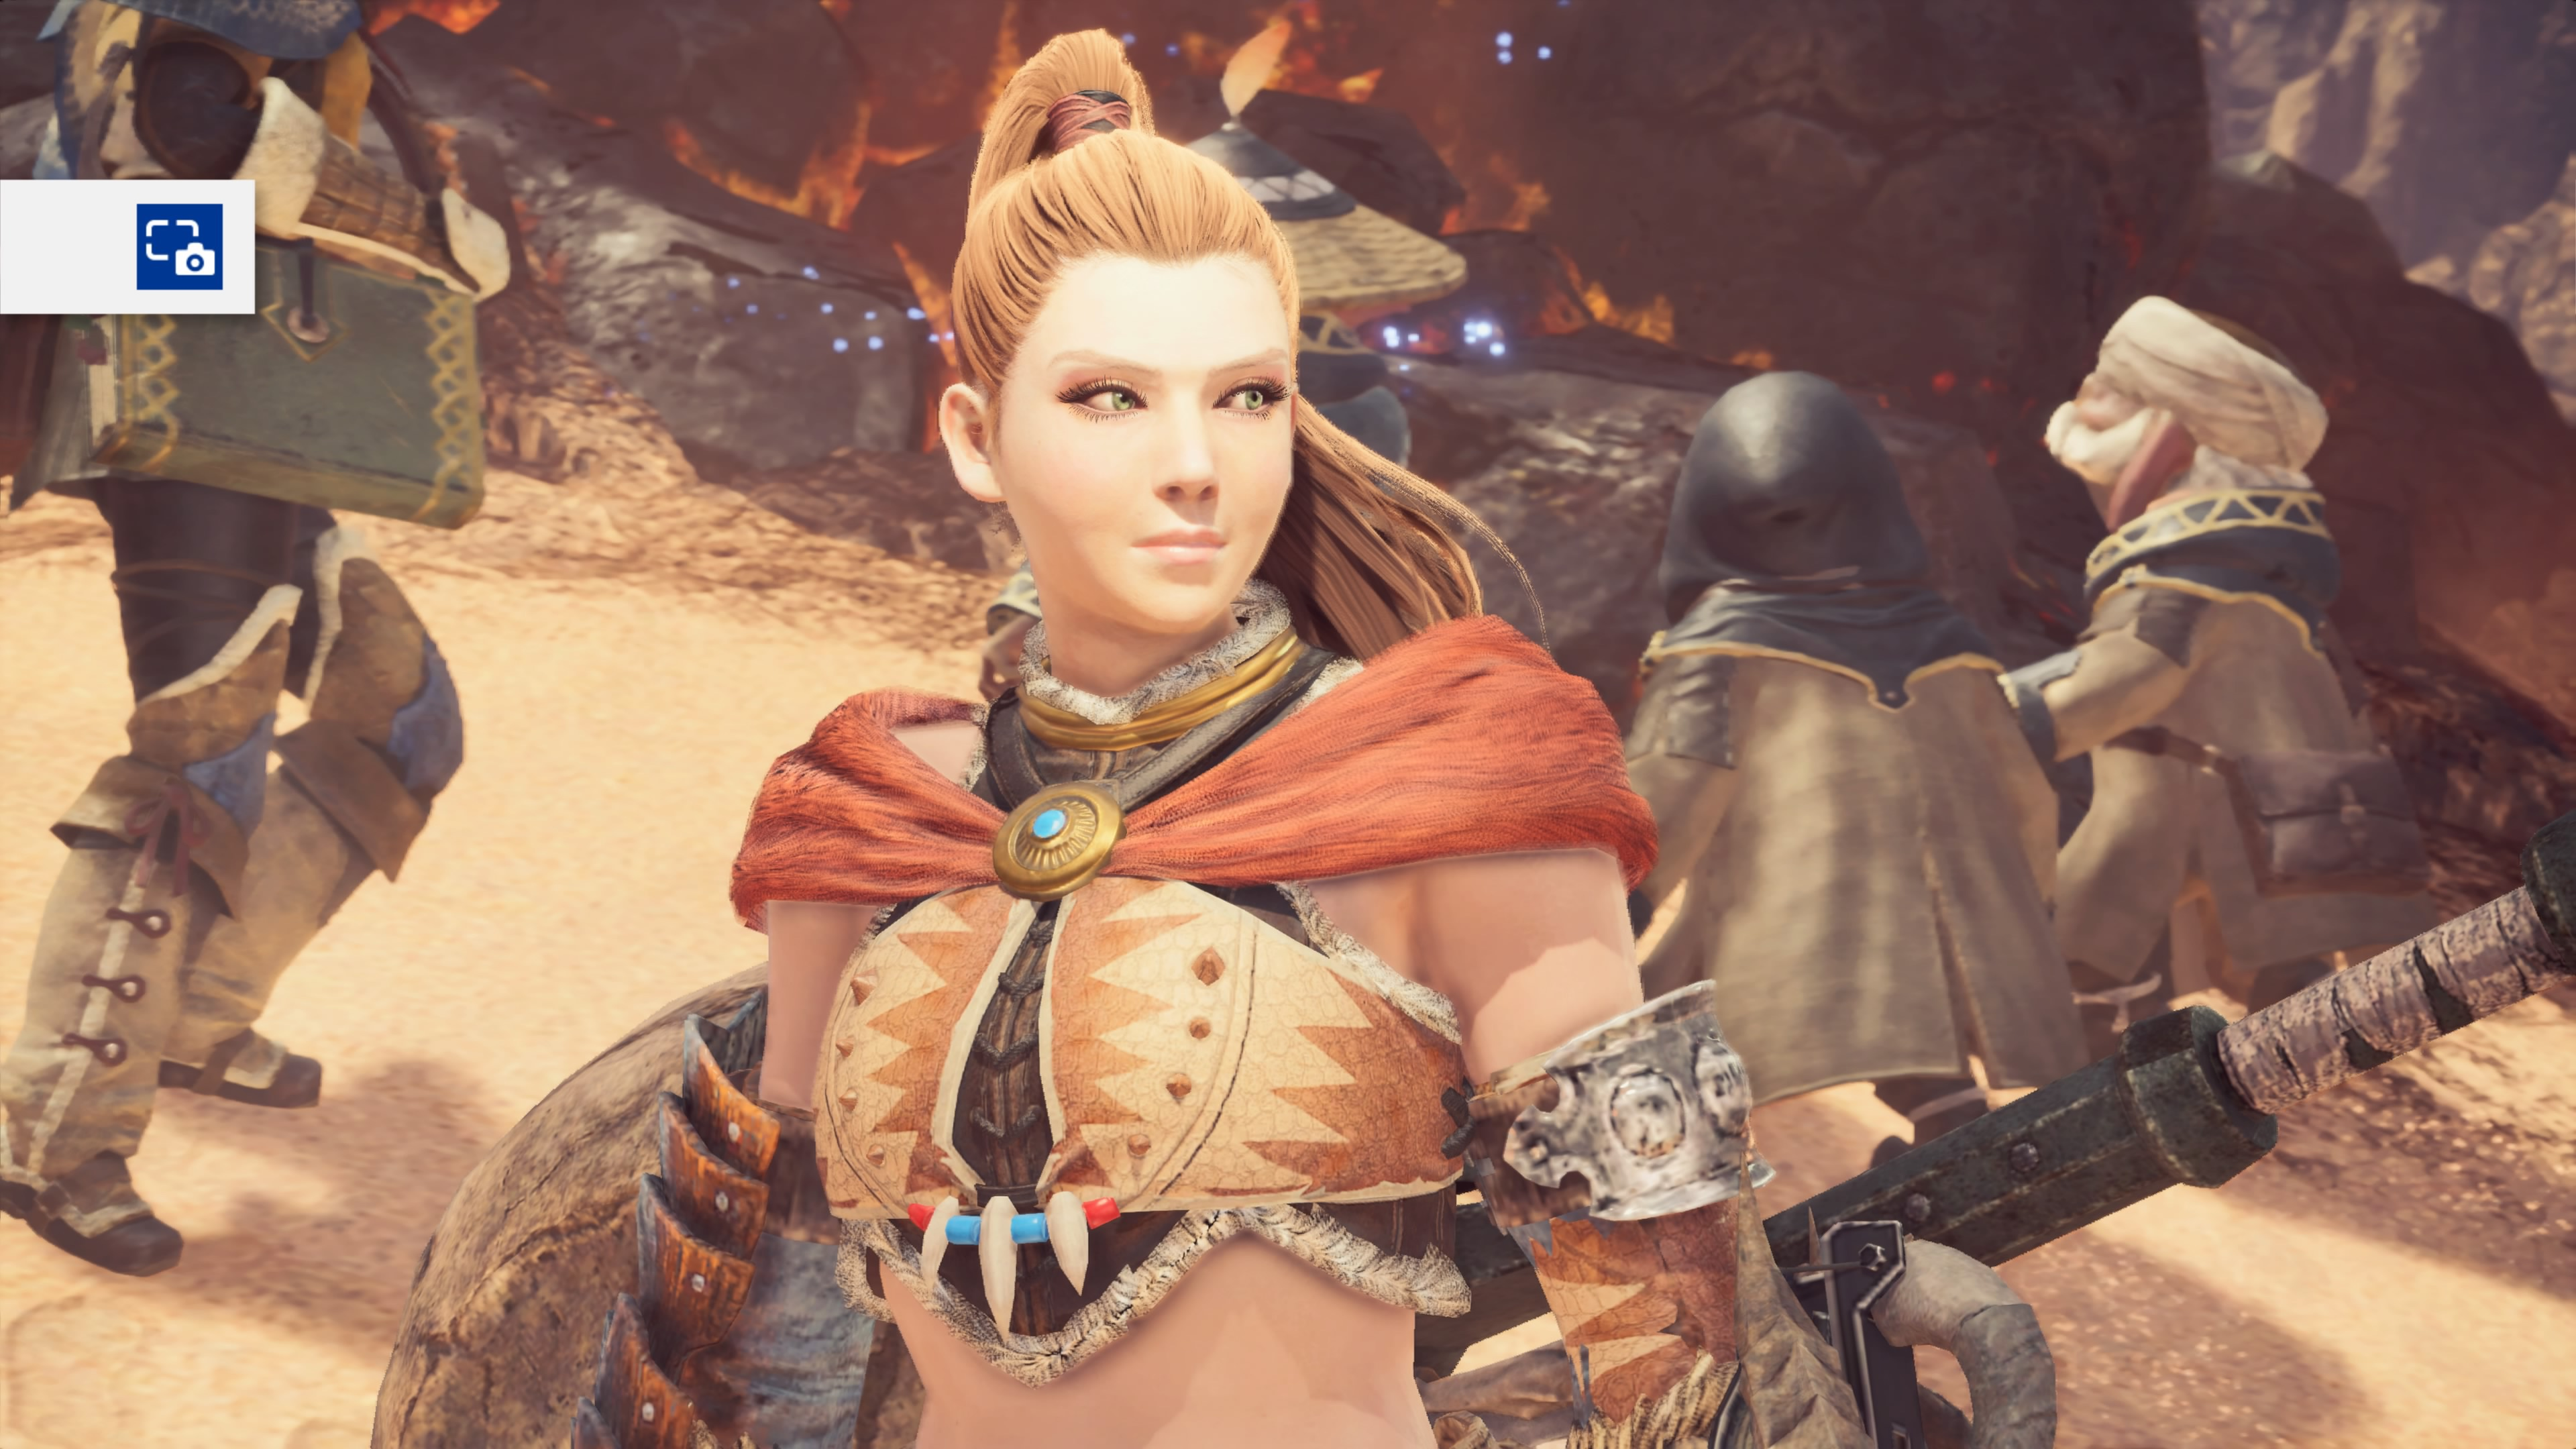 Monster Hunter Fashionista Come Share Your Pictures Here